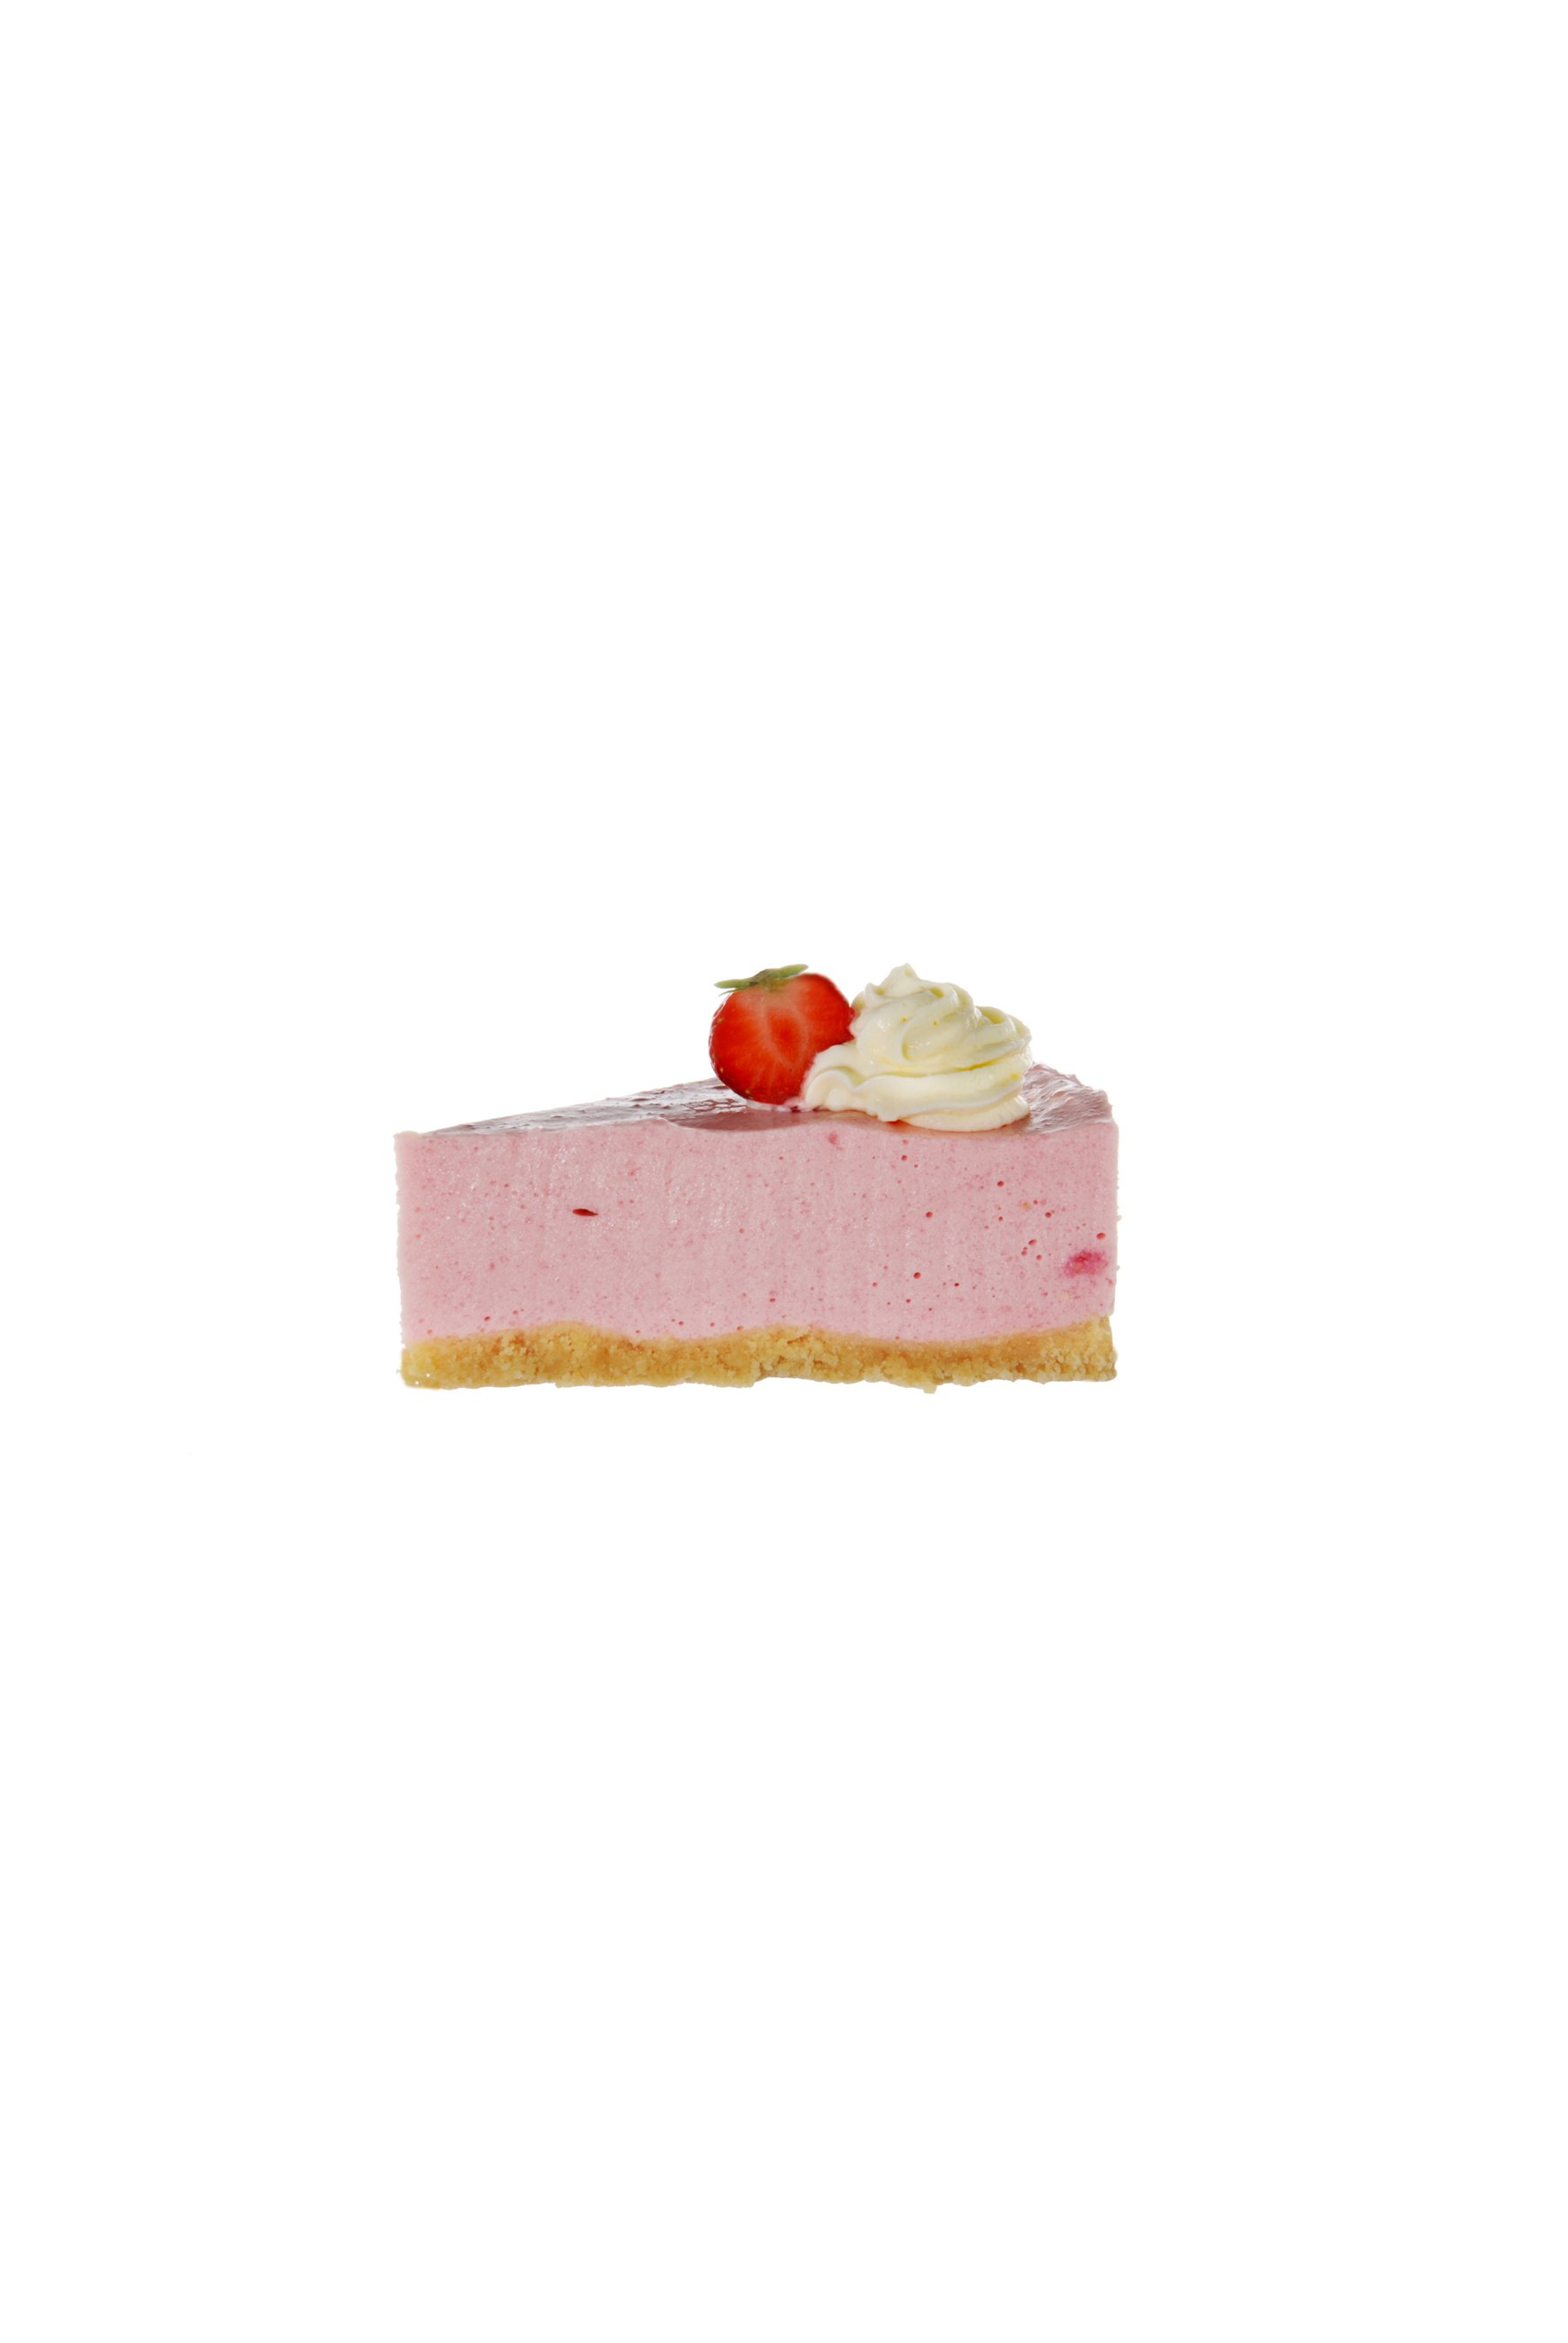 34 cheesecake - Christien Meindertsma, PIG 05049.jpg